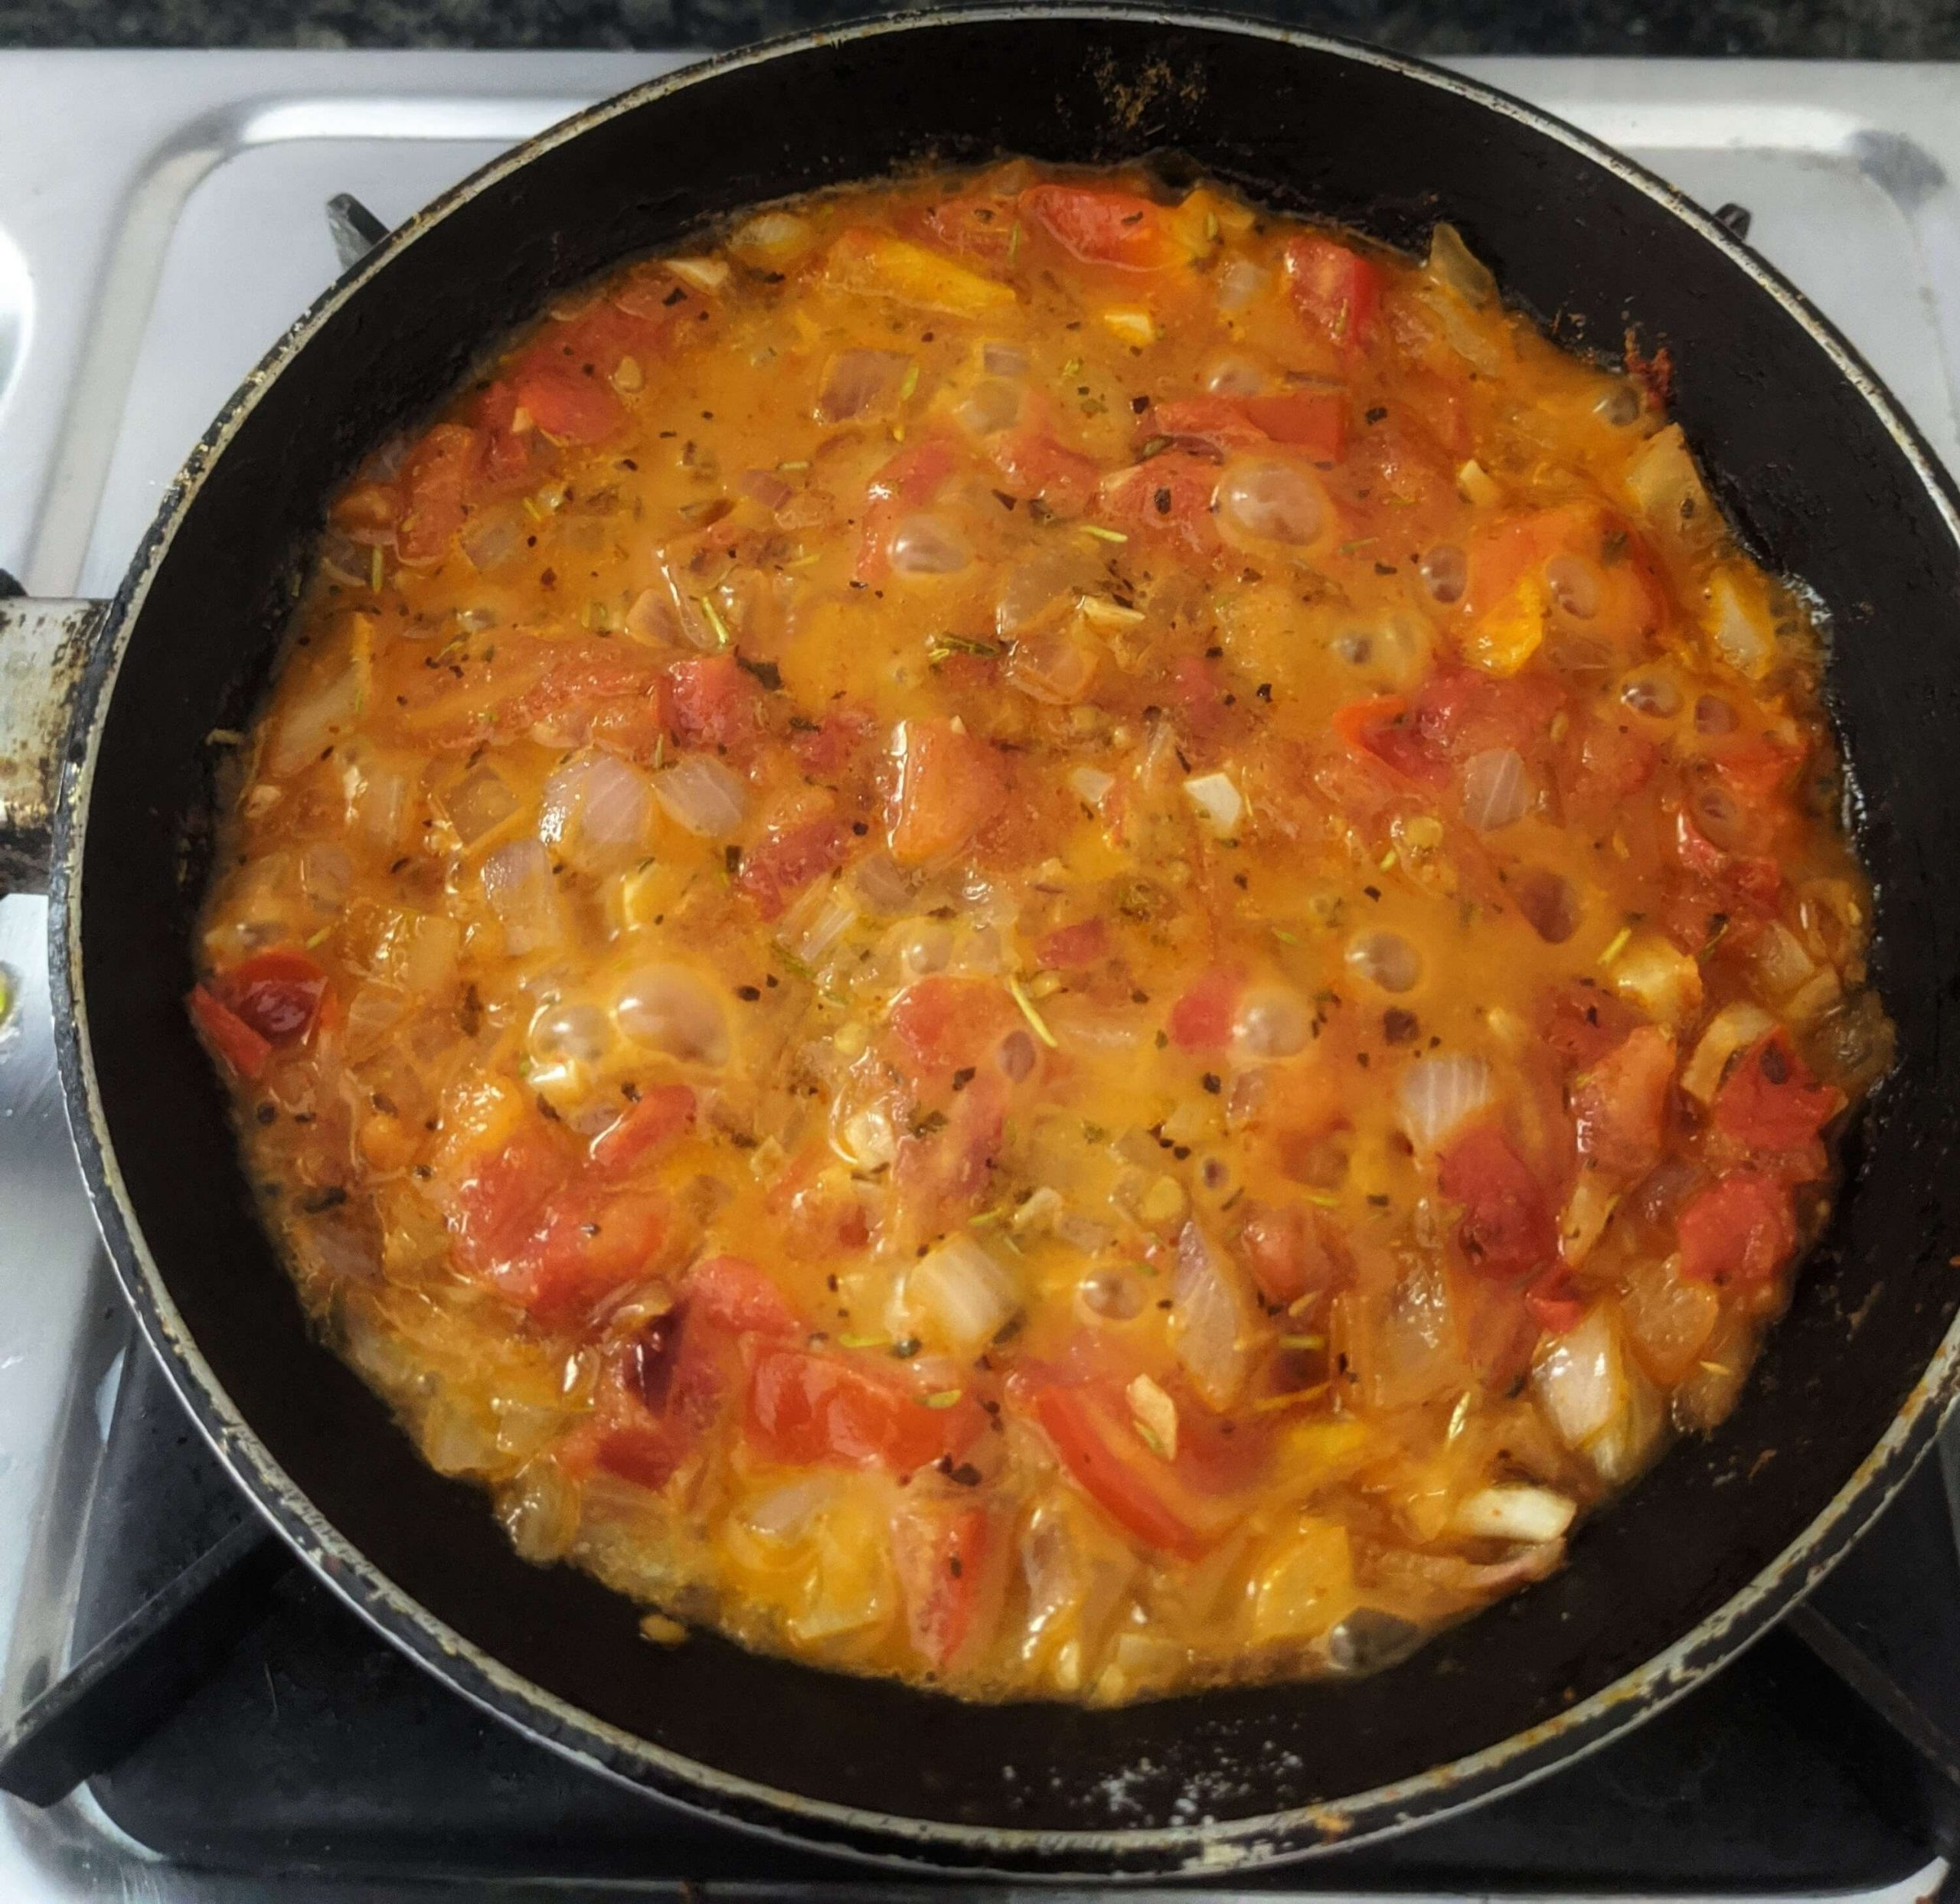 Egg Shakshuka - add spices and milk in it